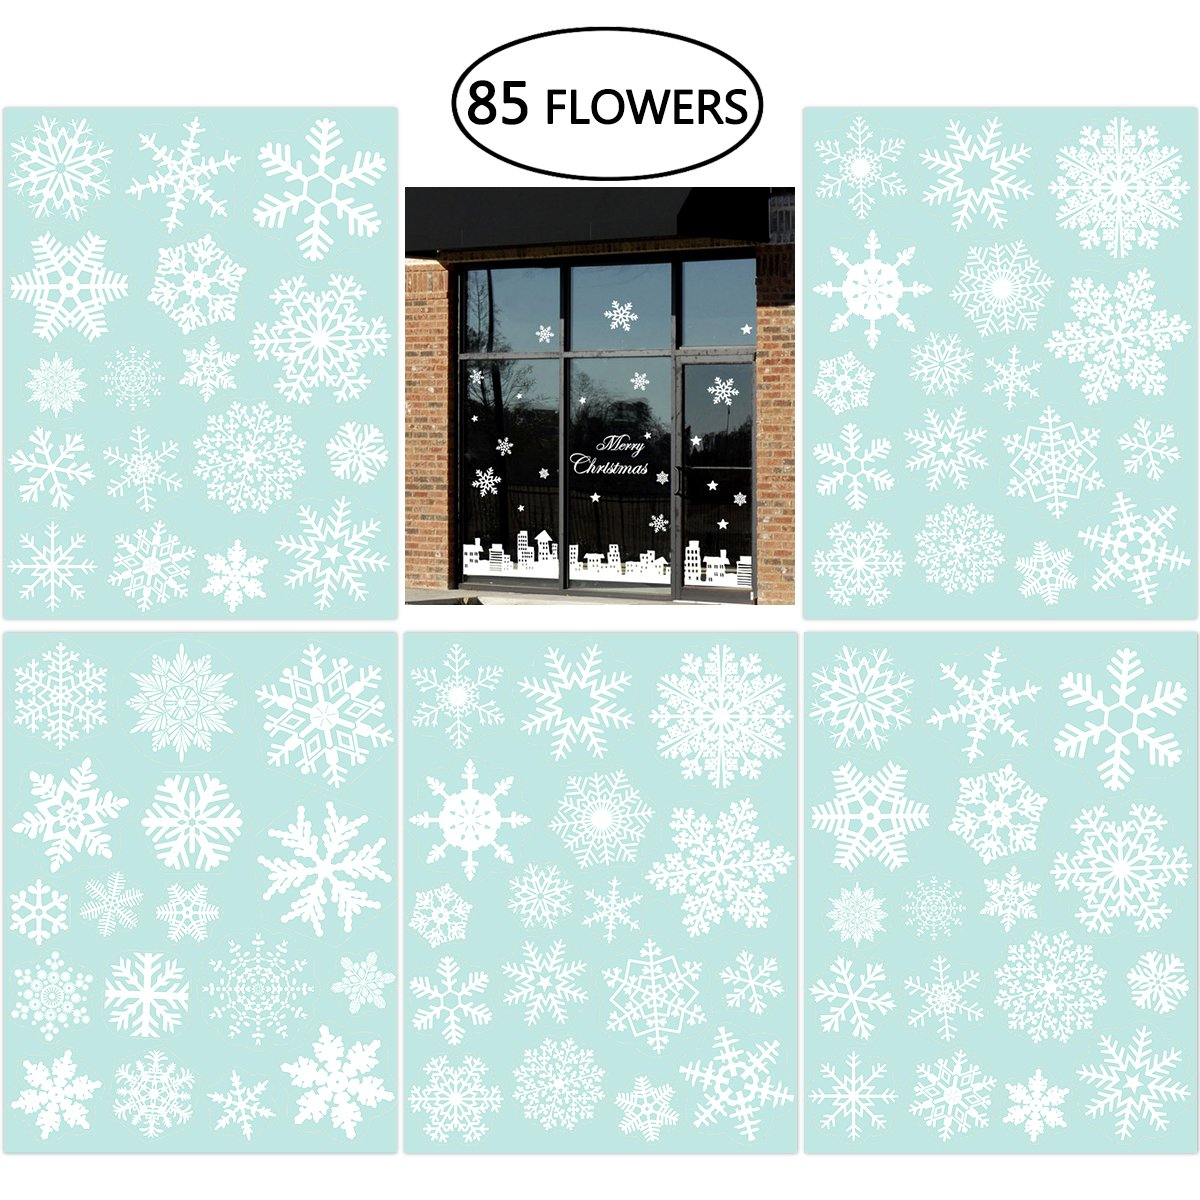 85 Snowflake Window Clings Christmas Window Decorations 34 Different Snowflakes by NICEXMAS - Glueless PVC Stickers